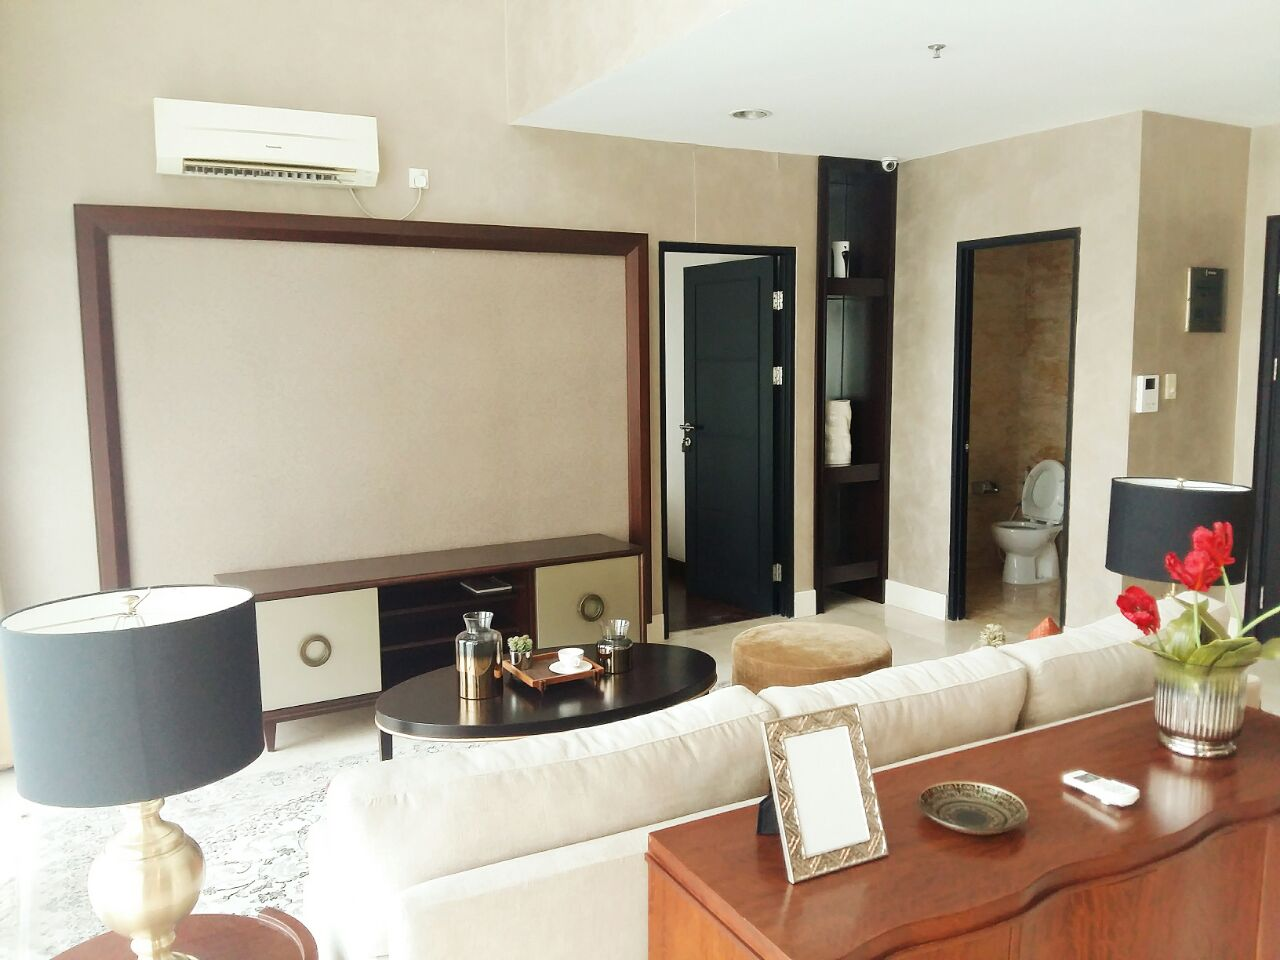 Penthouse - Essence Dharmawangsa 4BR Best Price - FURNISHED